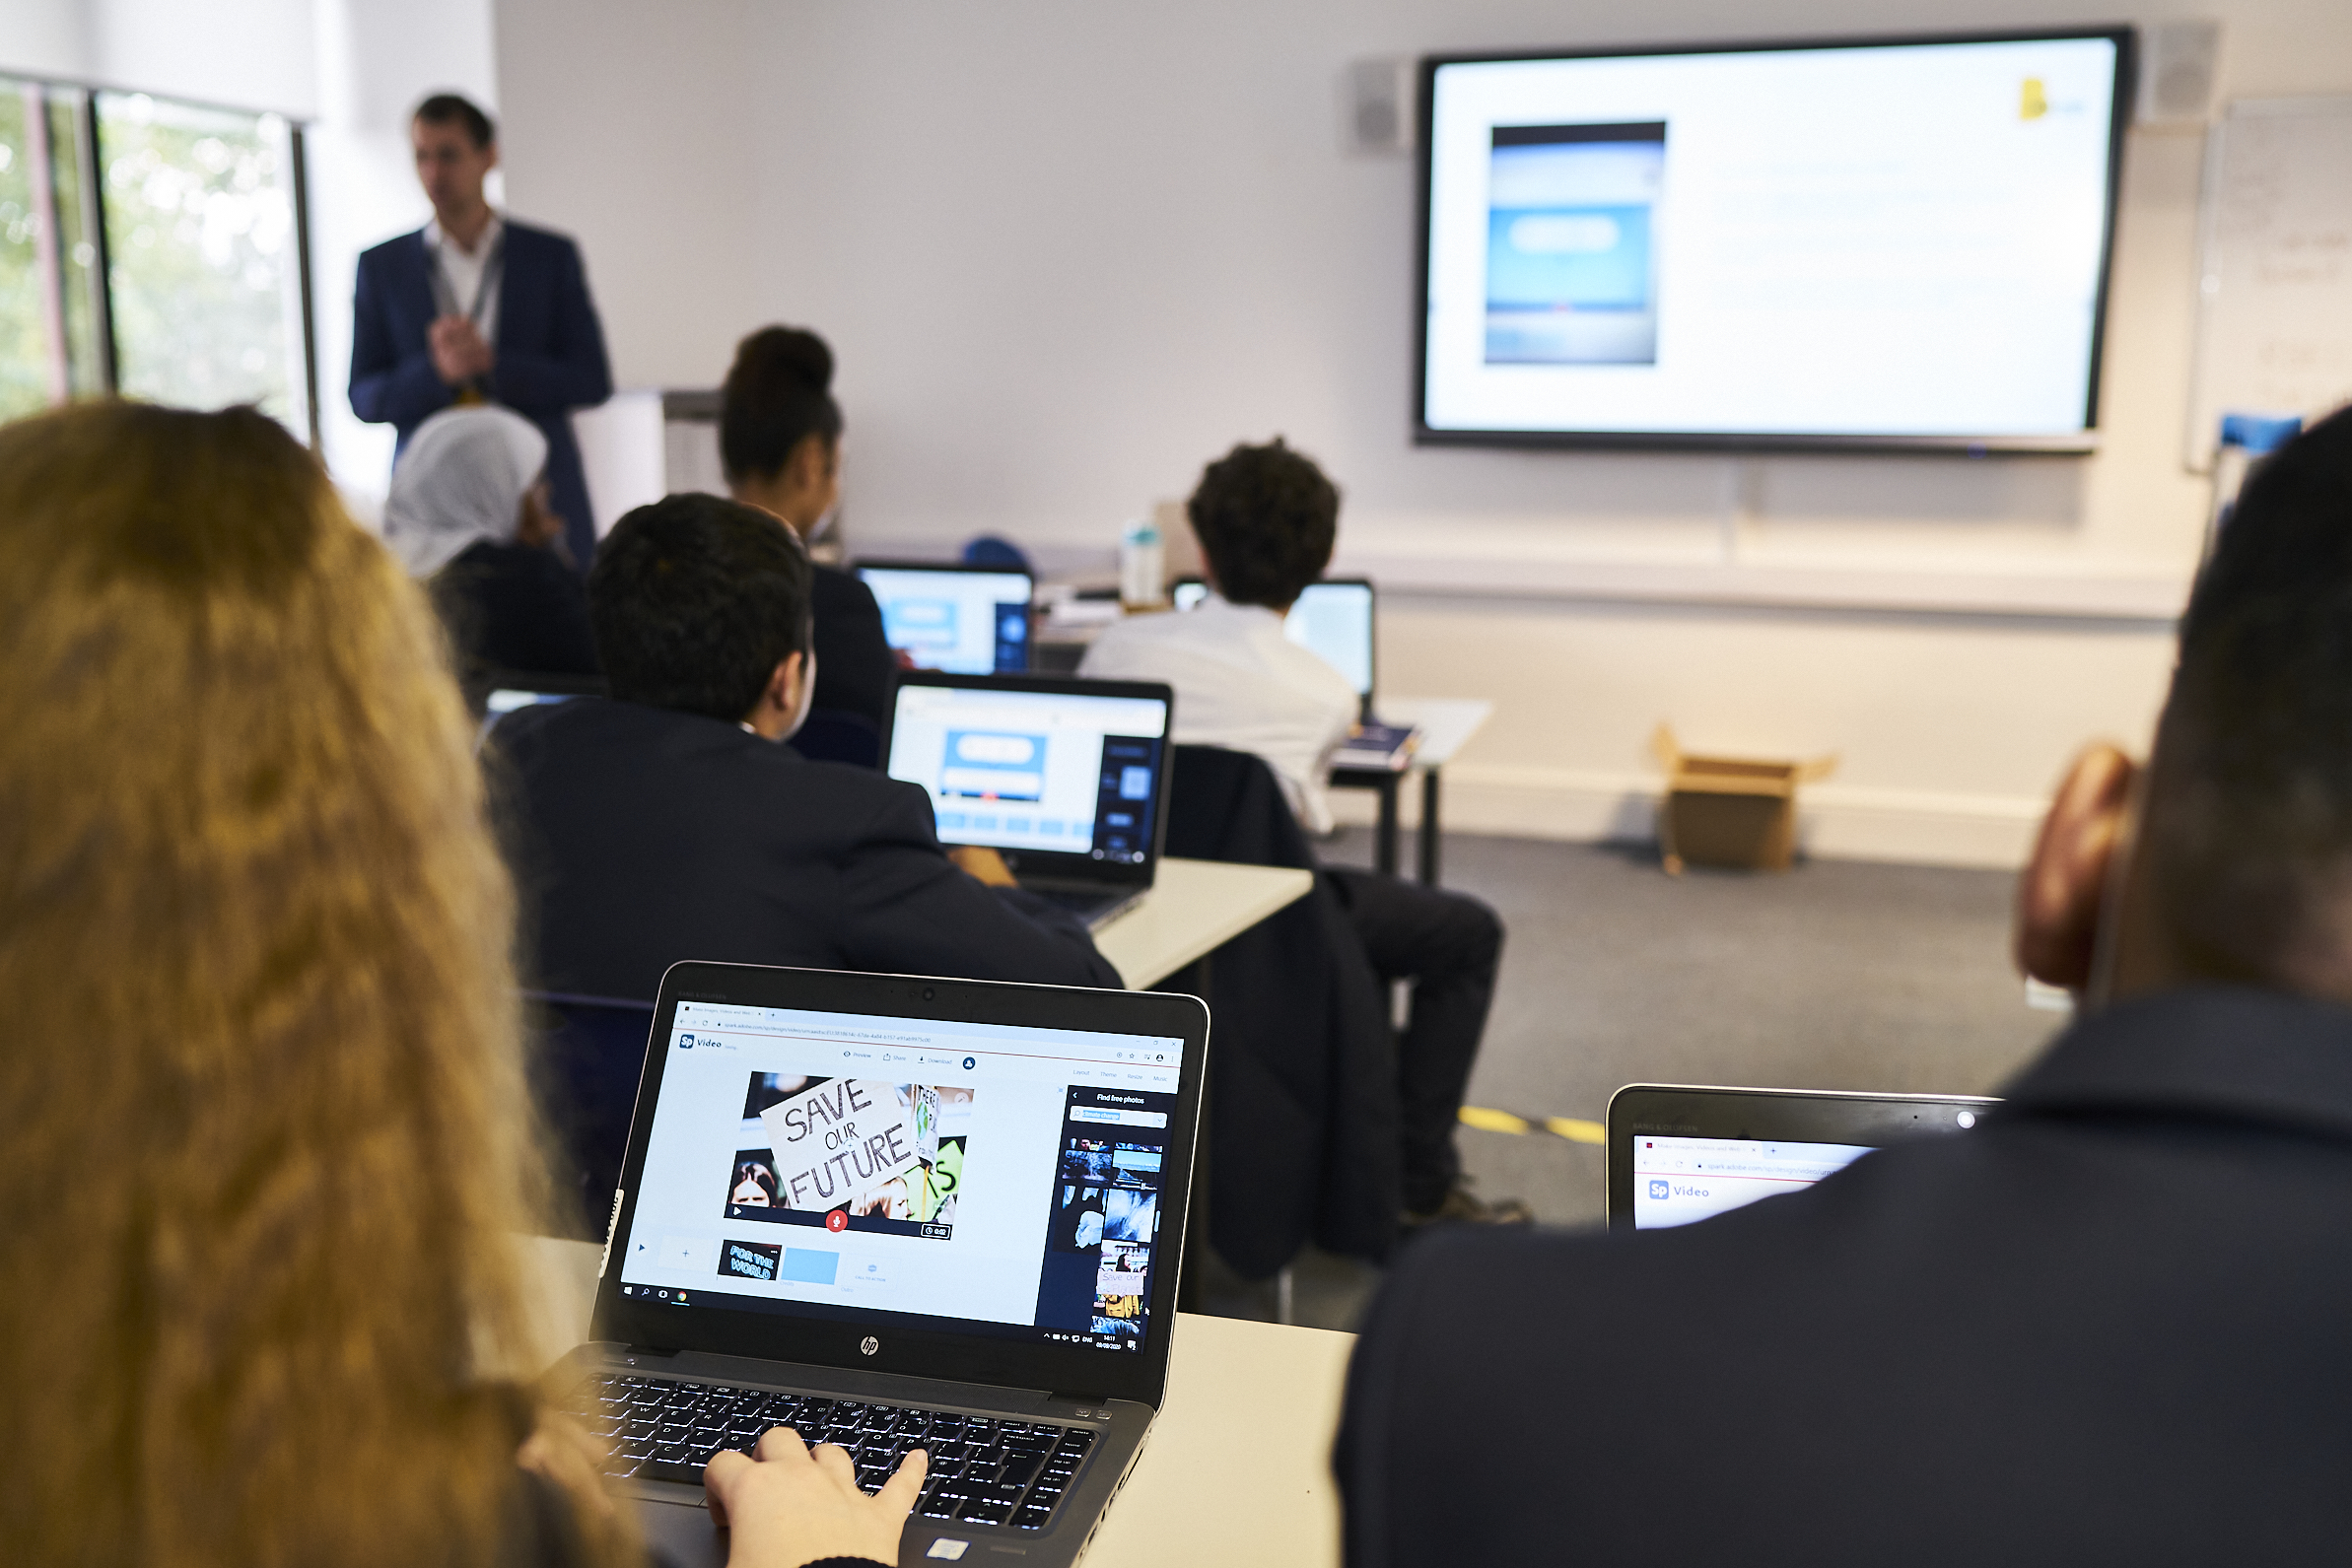 Building digital literacy skills in students